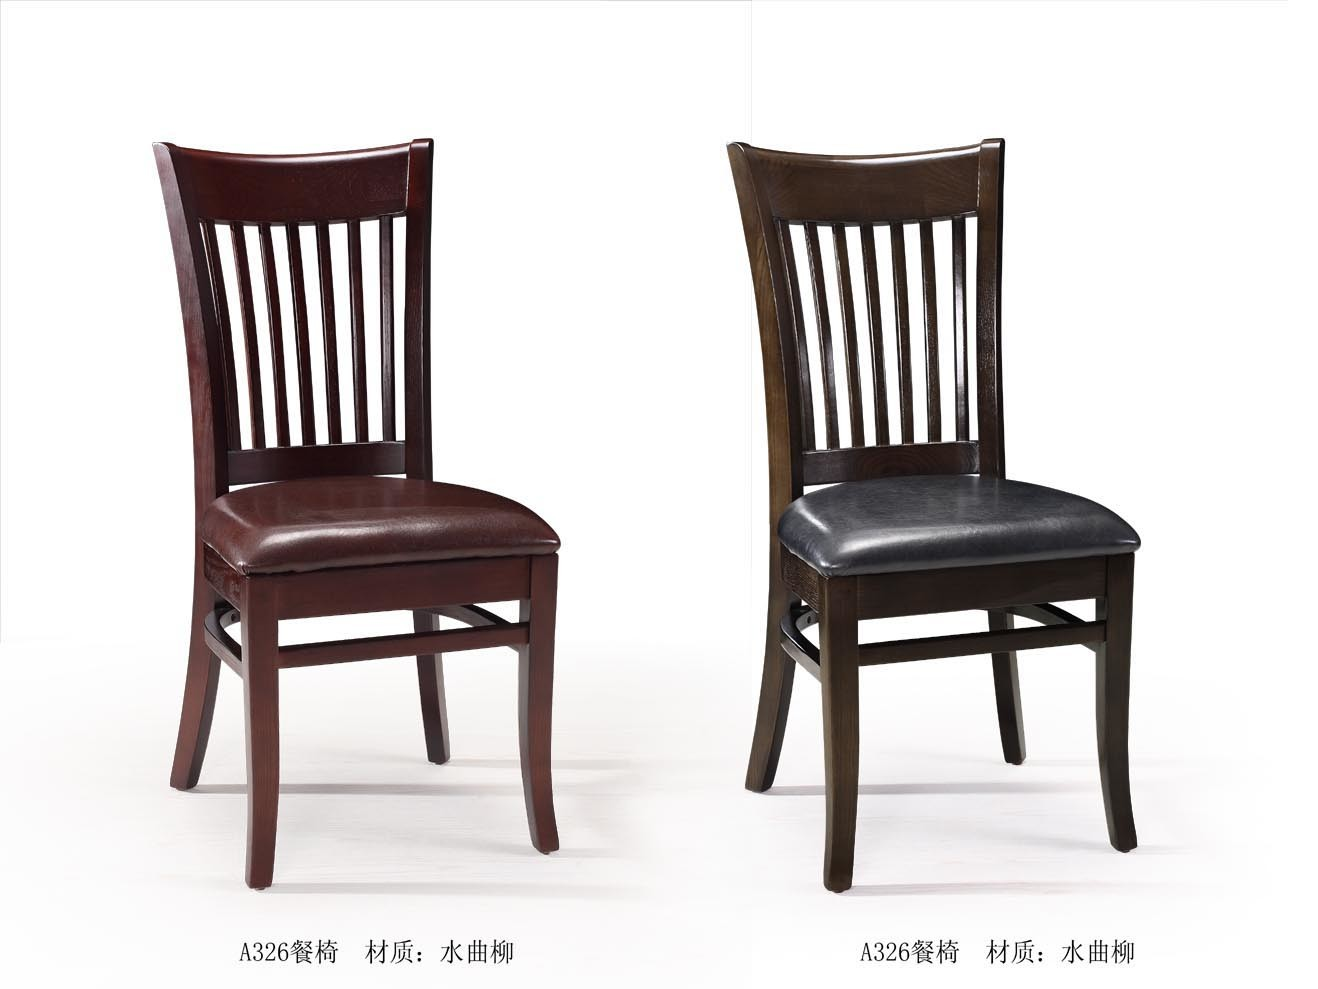 China wooden dining chair 326 china dining chair wood for Restaurant furniture